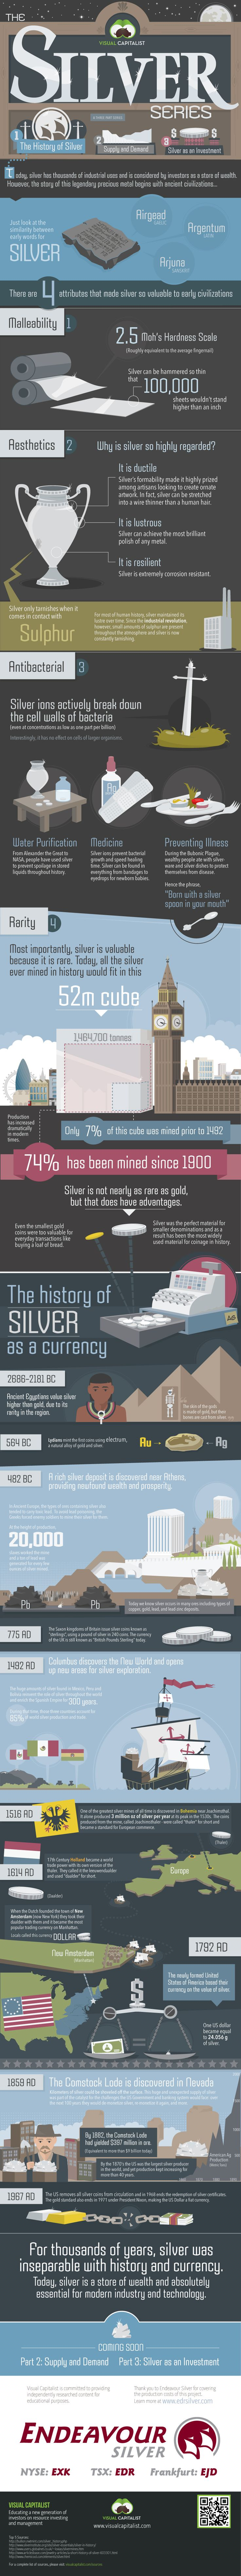 The Silver Series Part 1: The History of Silver